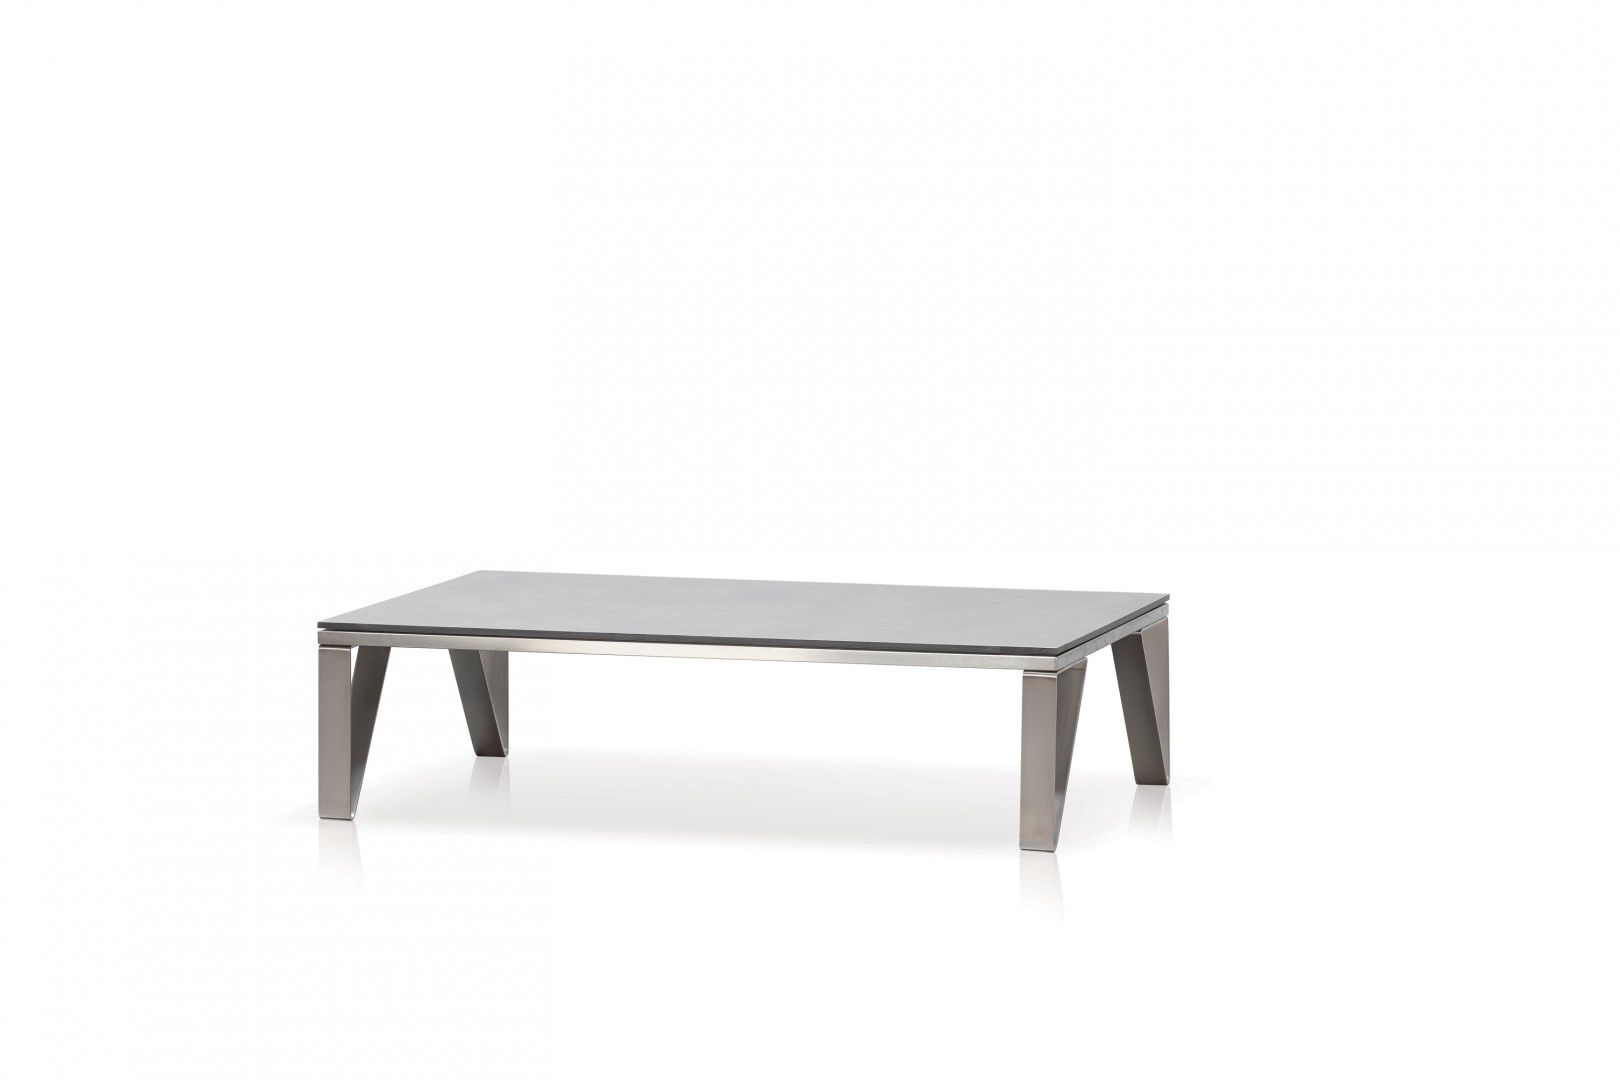 Contemporary coffee table stainless steel rectangular garden contemporary coffee table stainless steel rectangular garden lotos by ji spanihel todus geotapseo Images